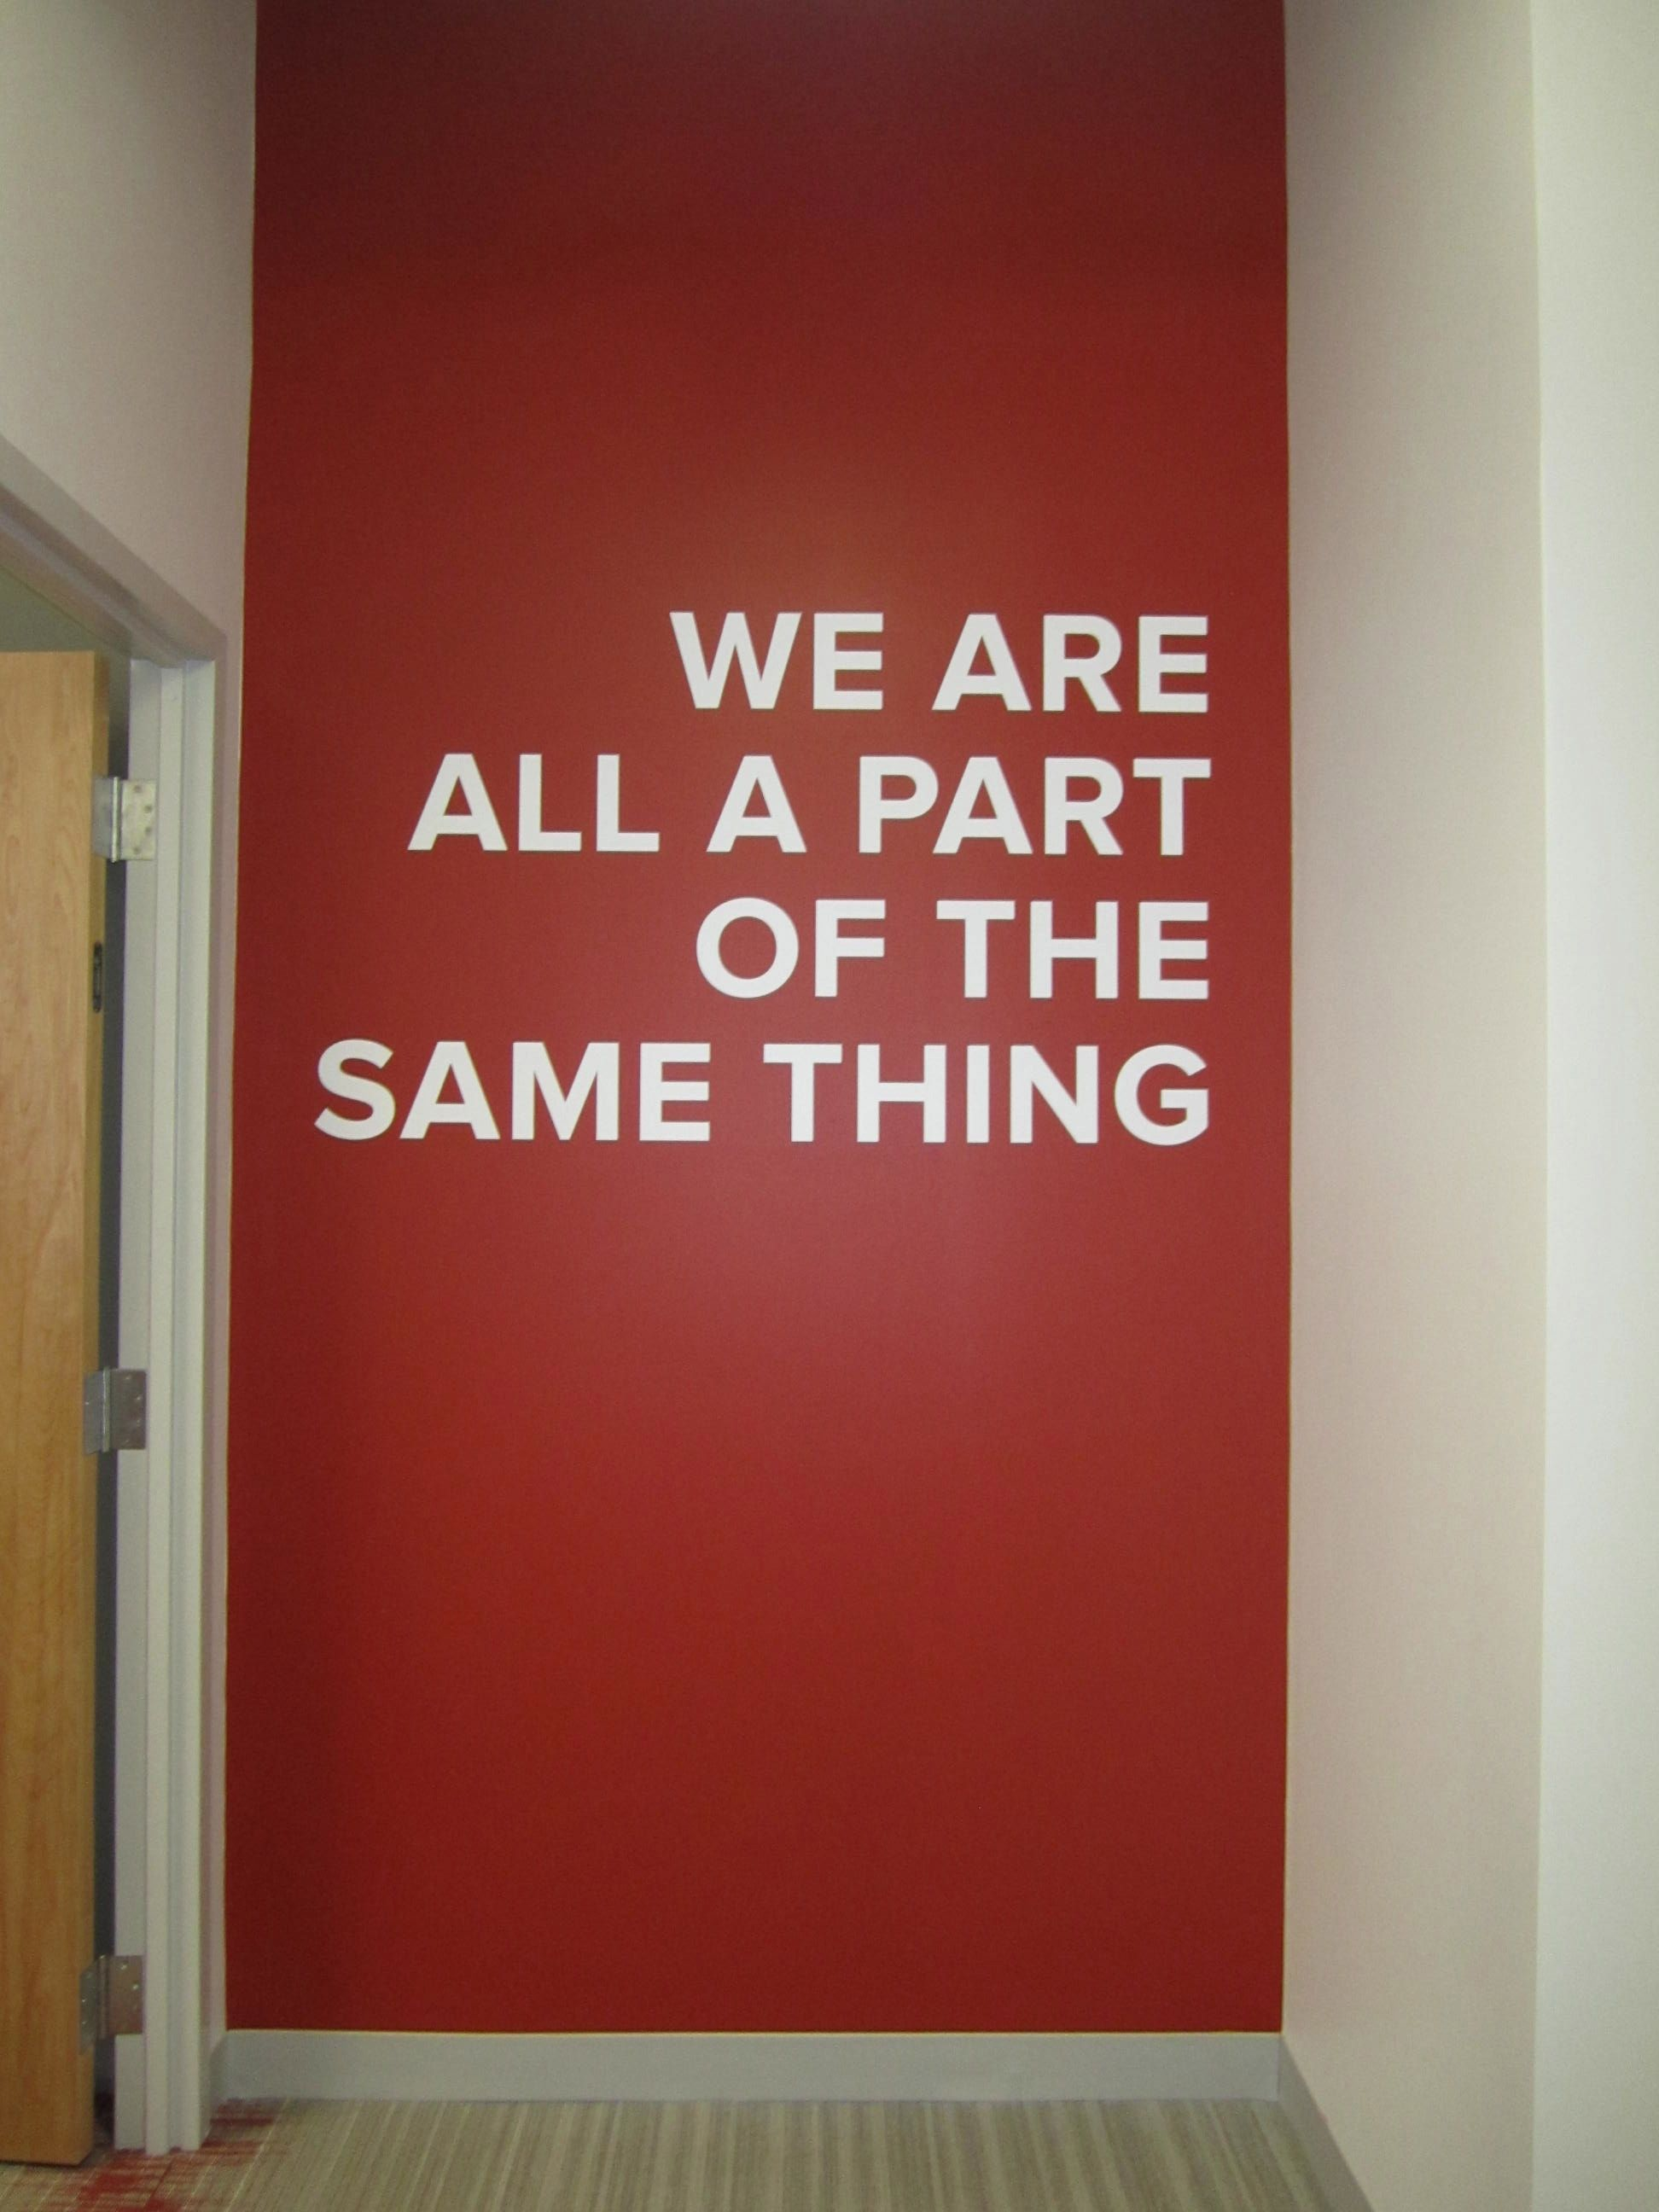 Inspiration For One Wall With Our Mission Statement To